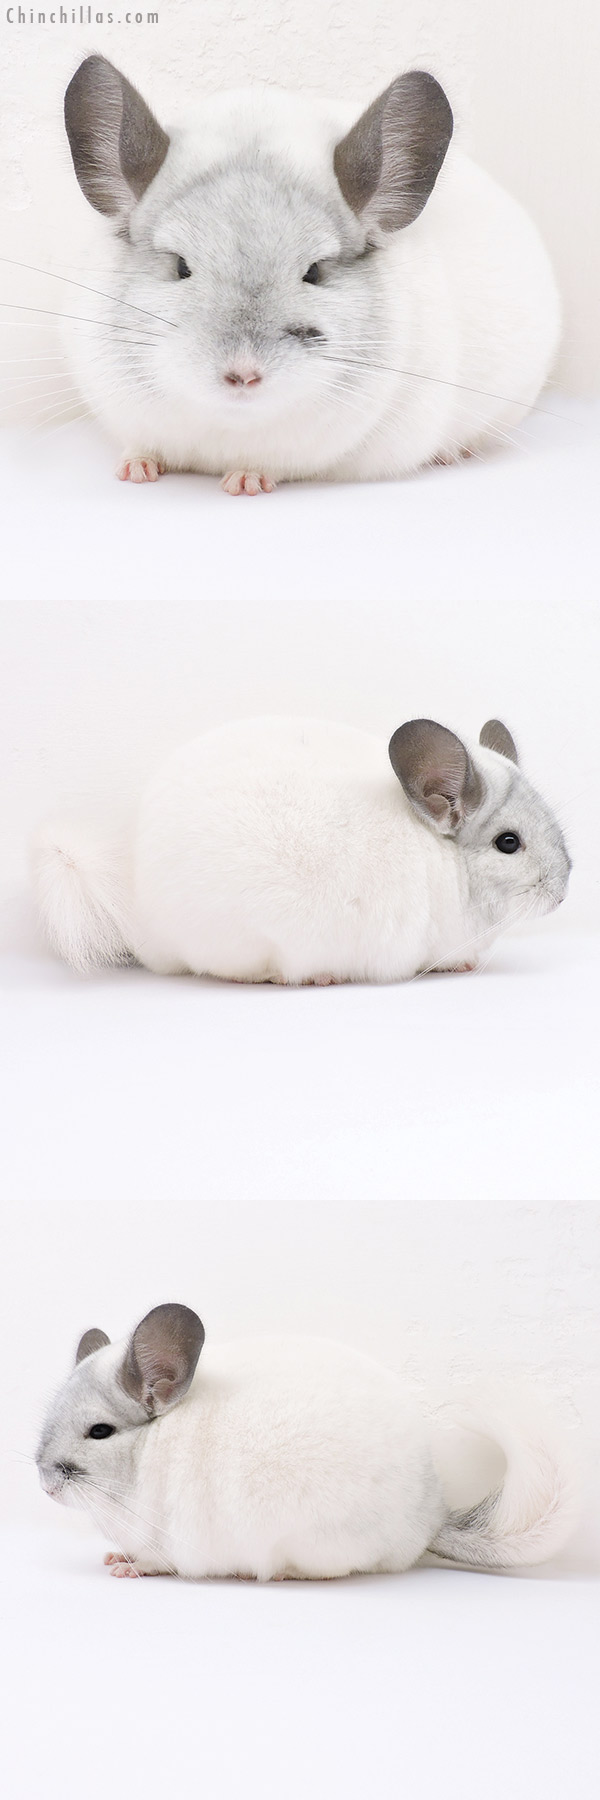 16314 Herd Improvement Quality White Mosaic Male Chinchilla